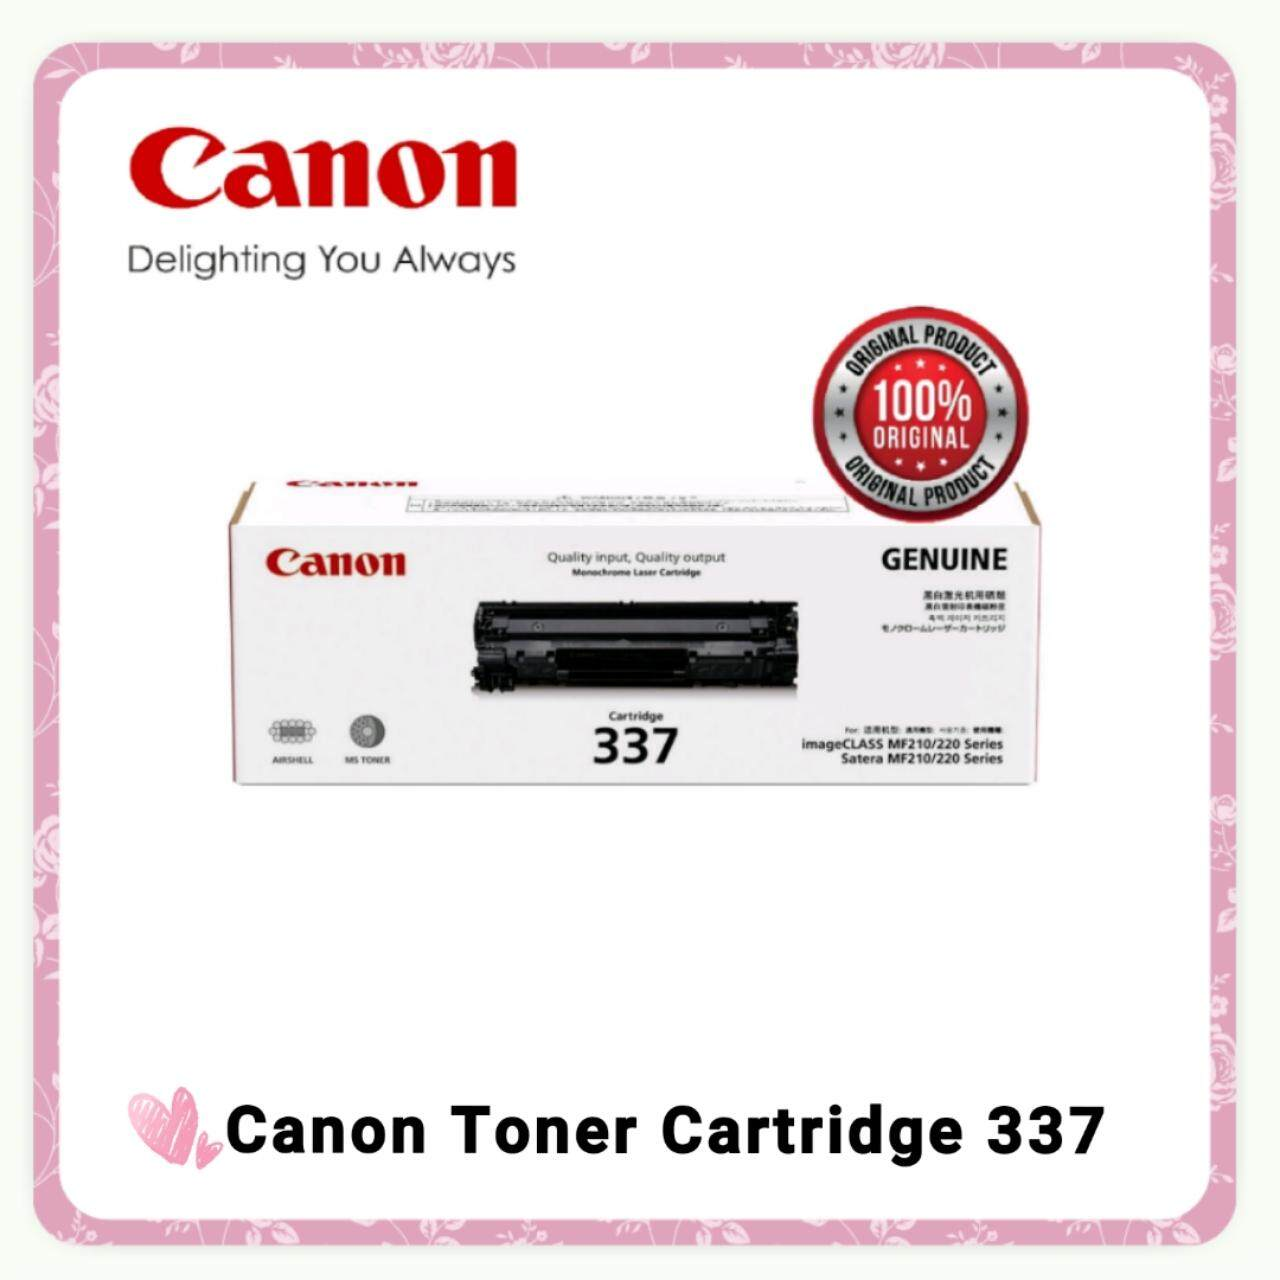 Canon Printers Accessories Price In Malaysia Best Print Head G1000 G2000 G3000 Color Original Genuine Cartridge 337 Black